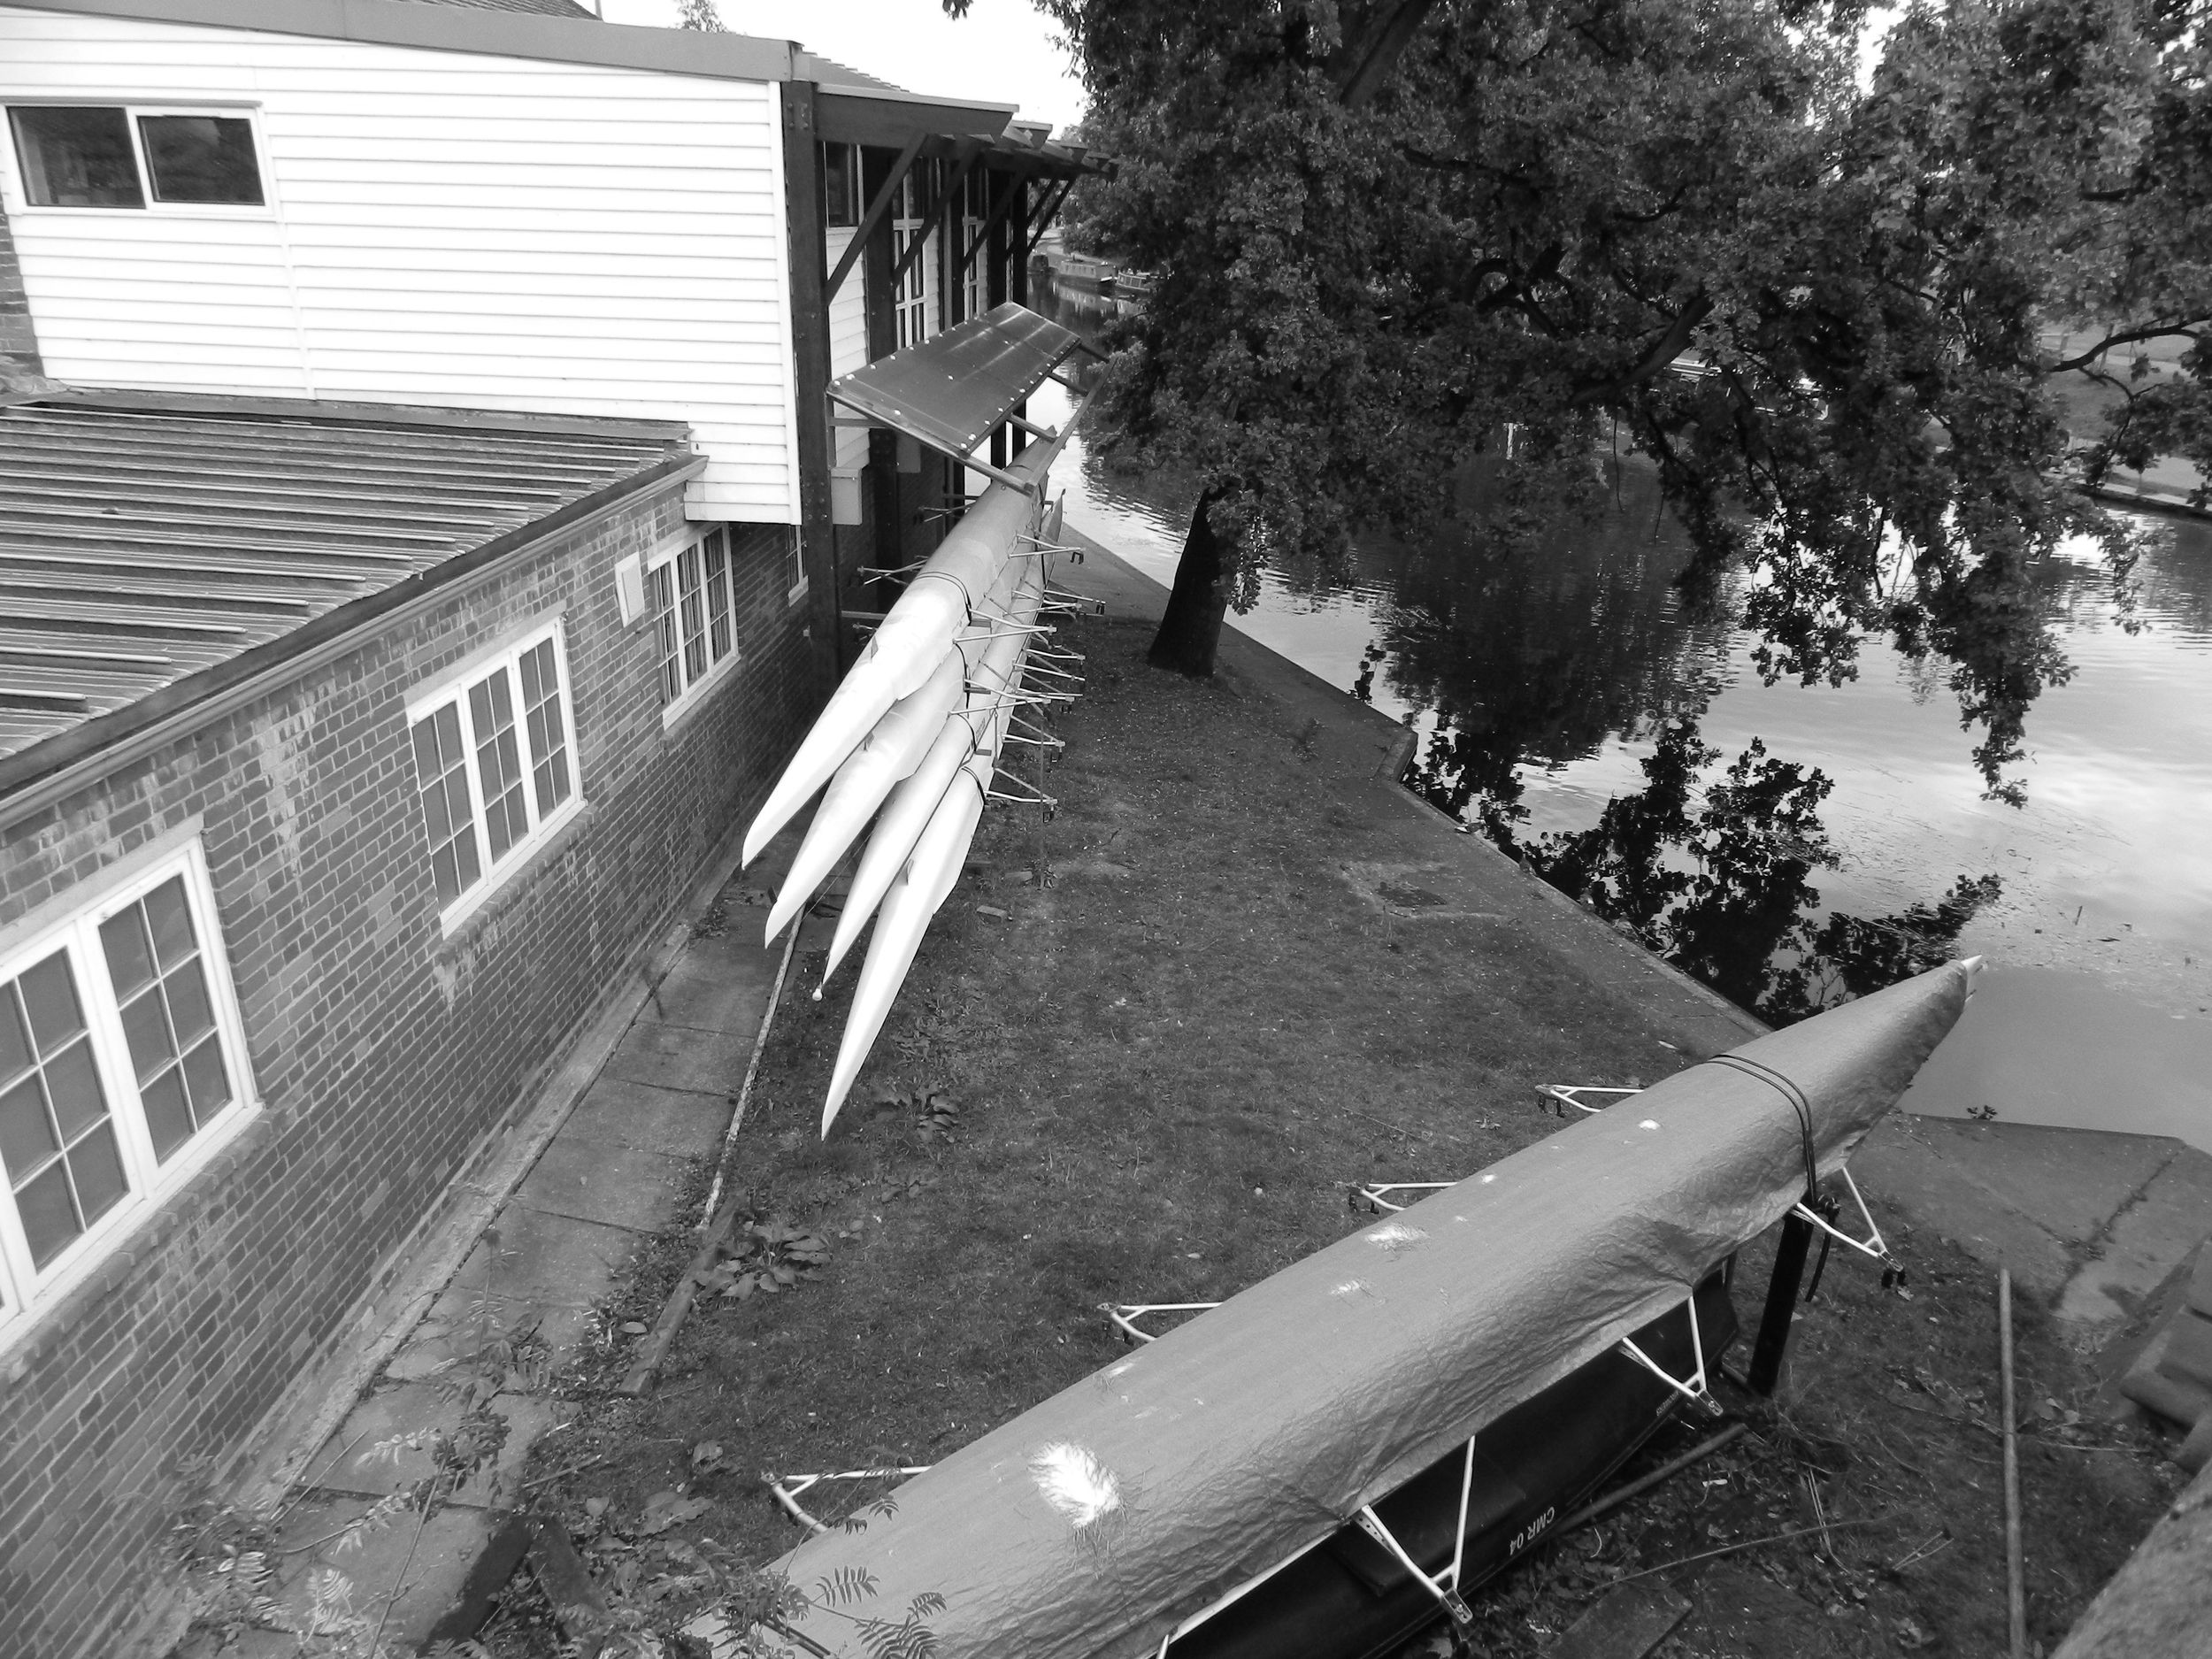 Queen's College Boat House